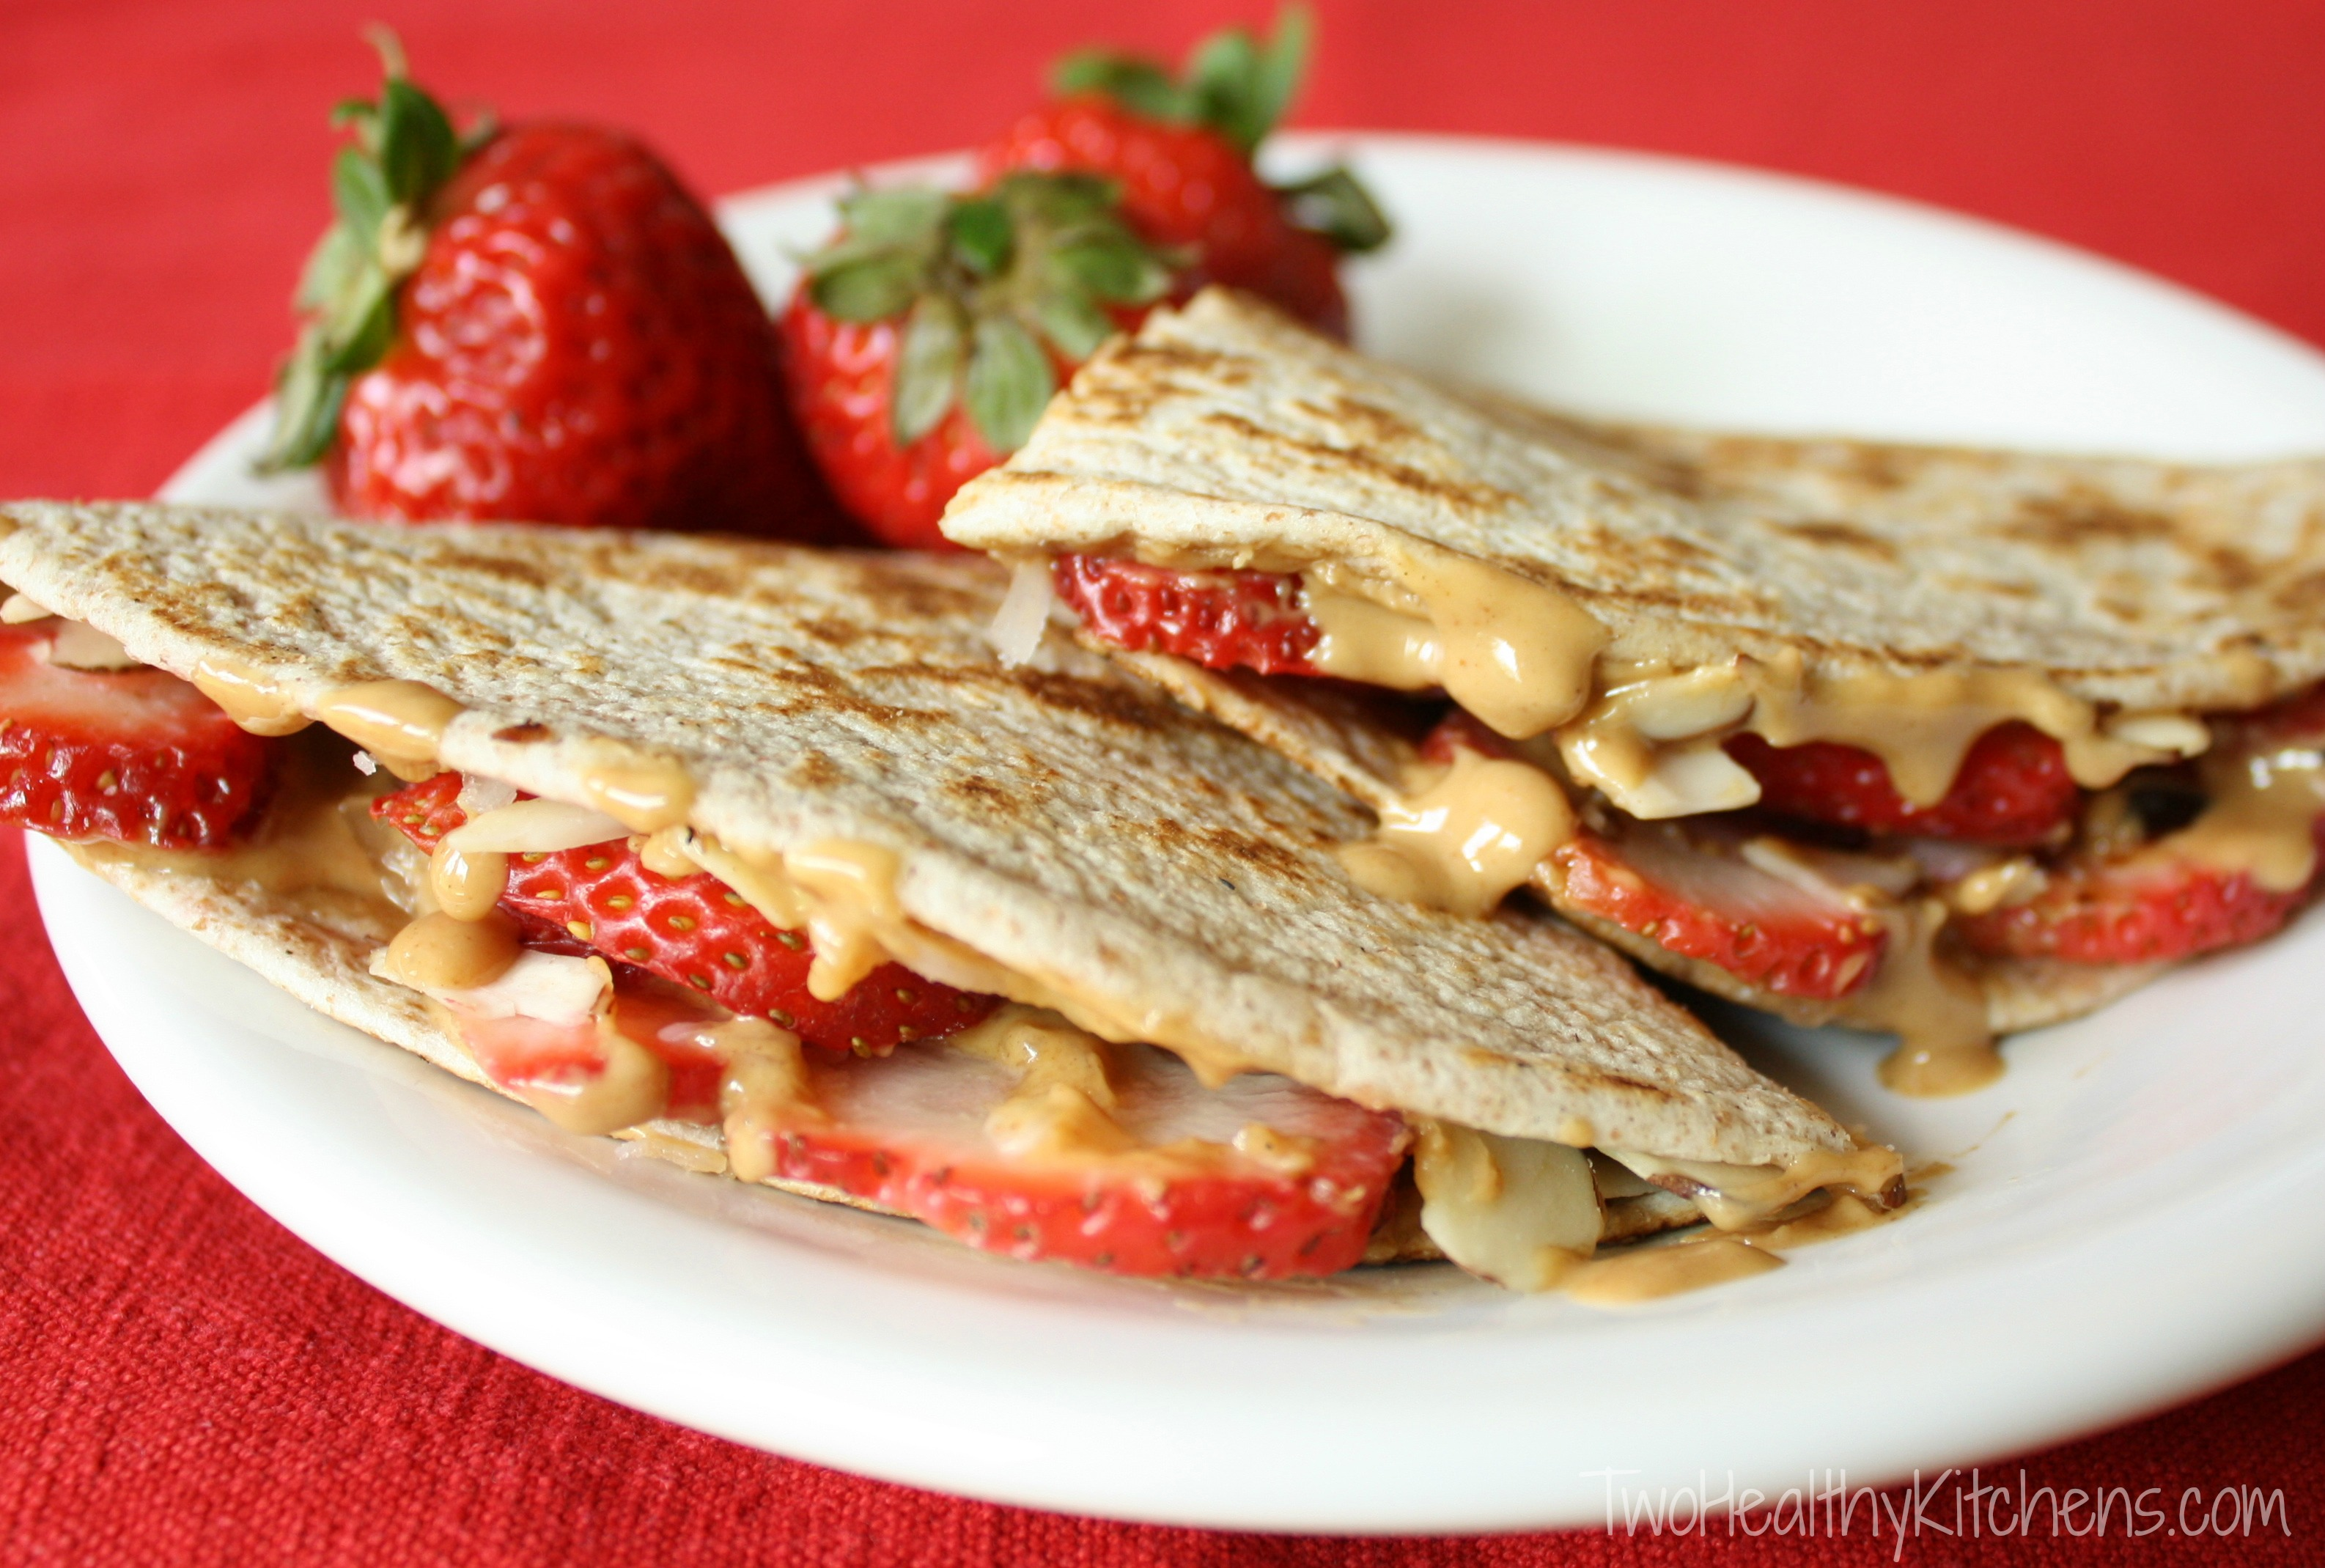 Strawberry-Peanut Butter Quesadillas Recipe {www.TwoHealthyKitchens.com}